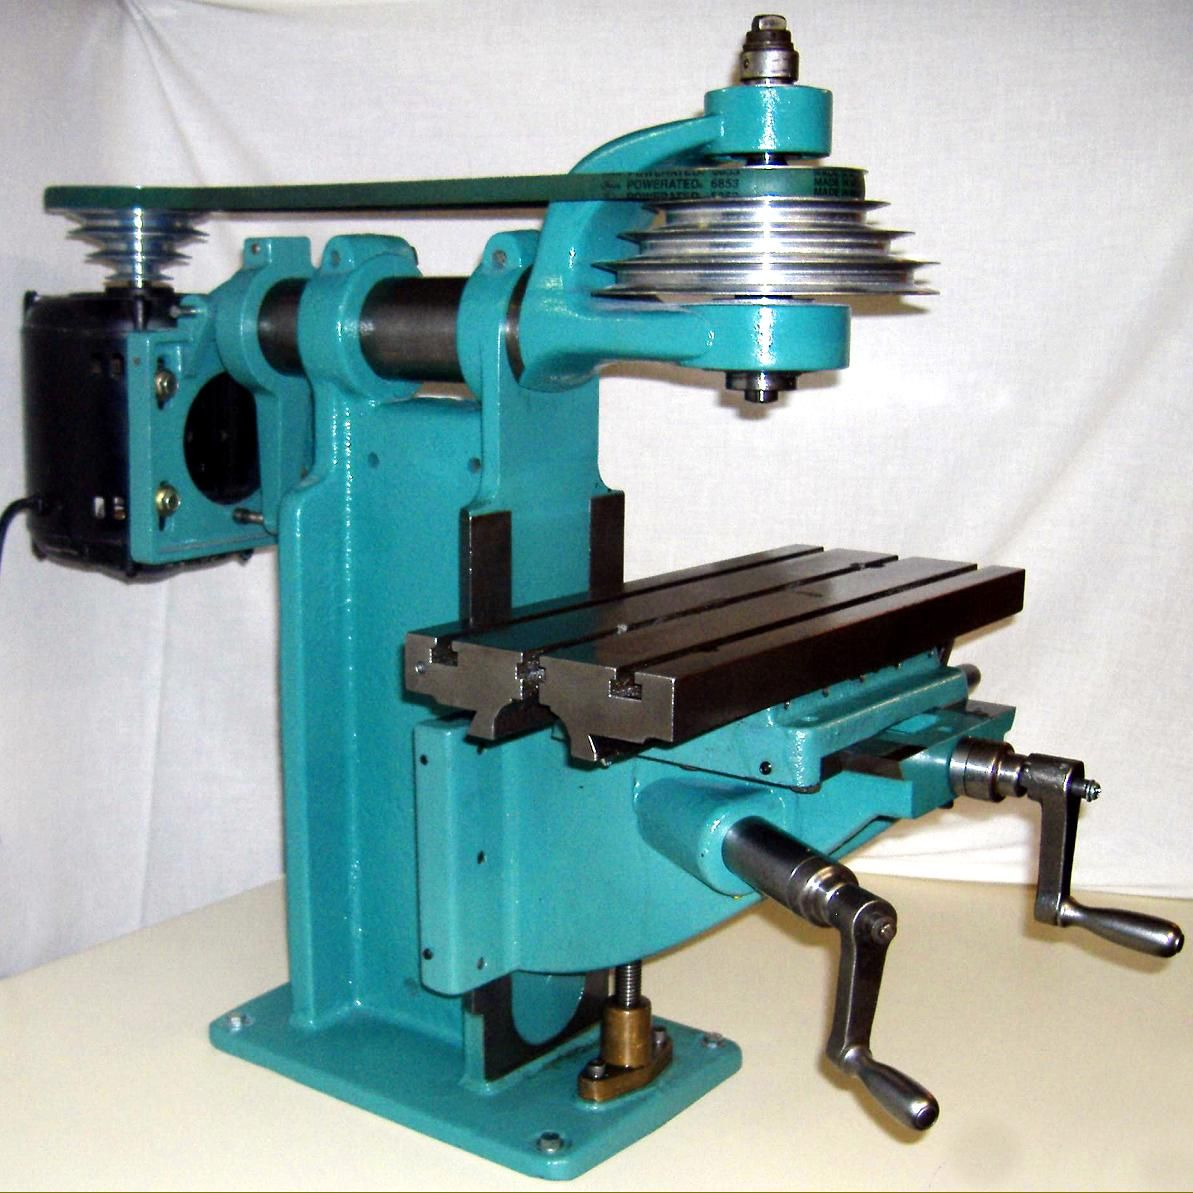 Linley Jig Bore Milling Machine Single Phase Table Is 7 Inch X 17